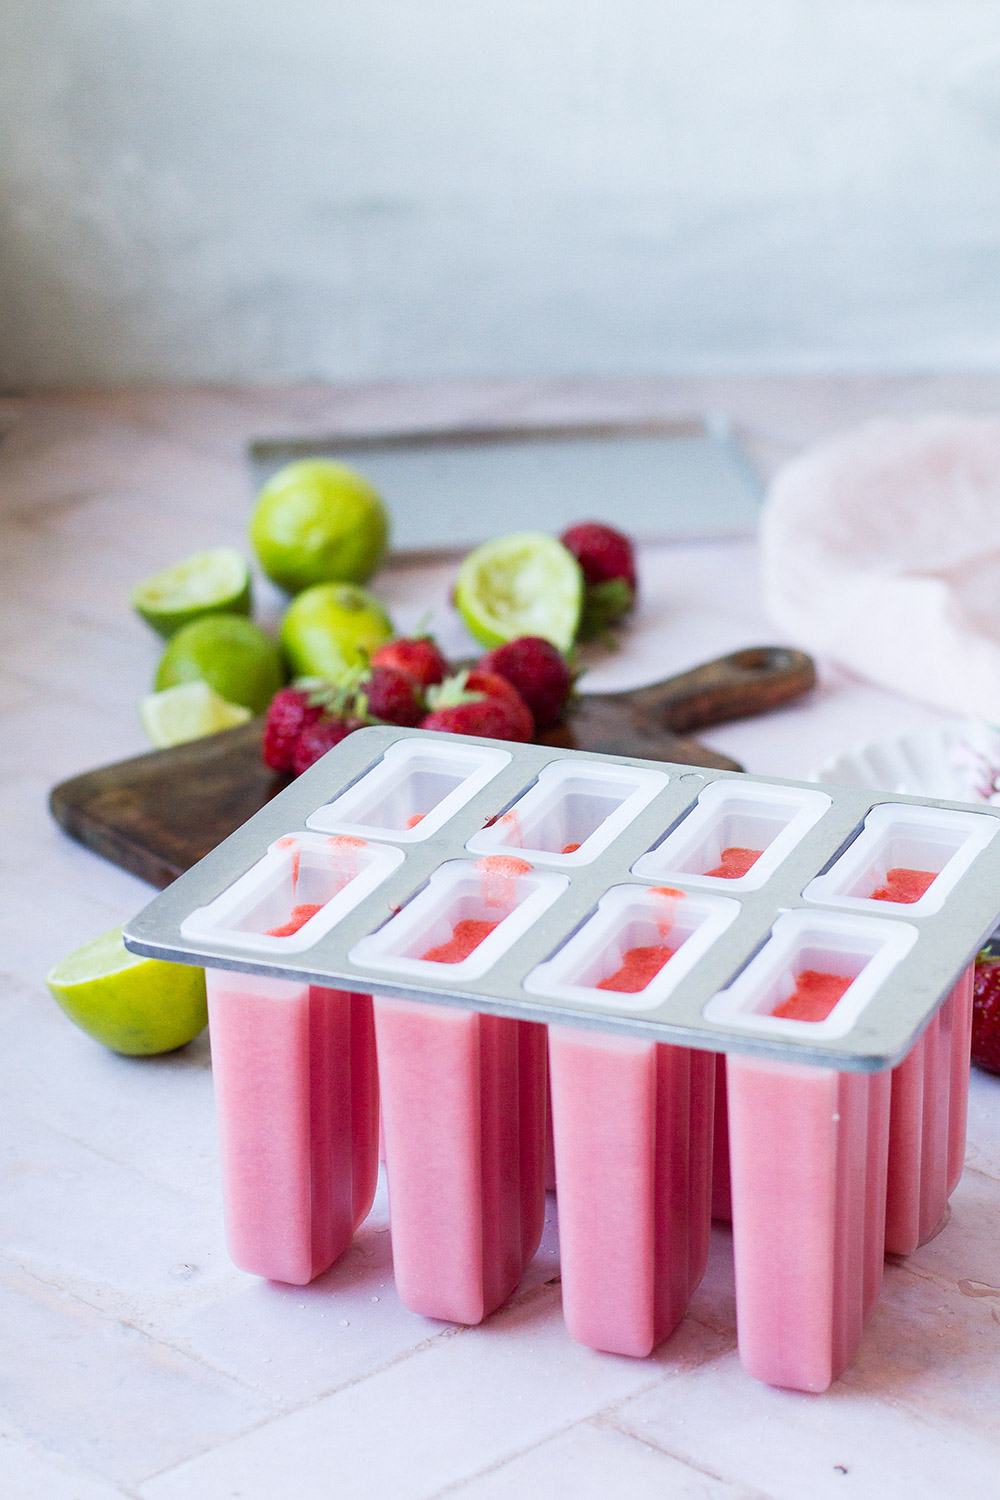 Ice cream tray with pink strawberry filling.